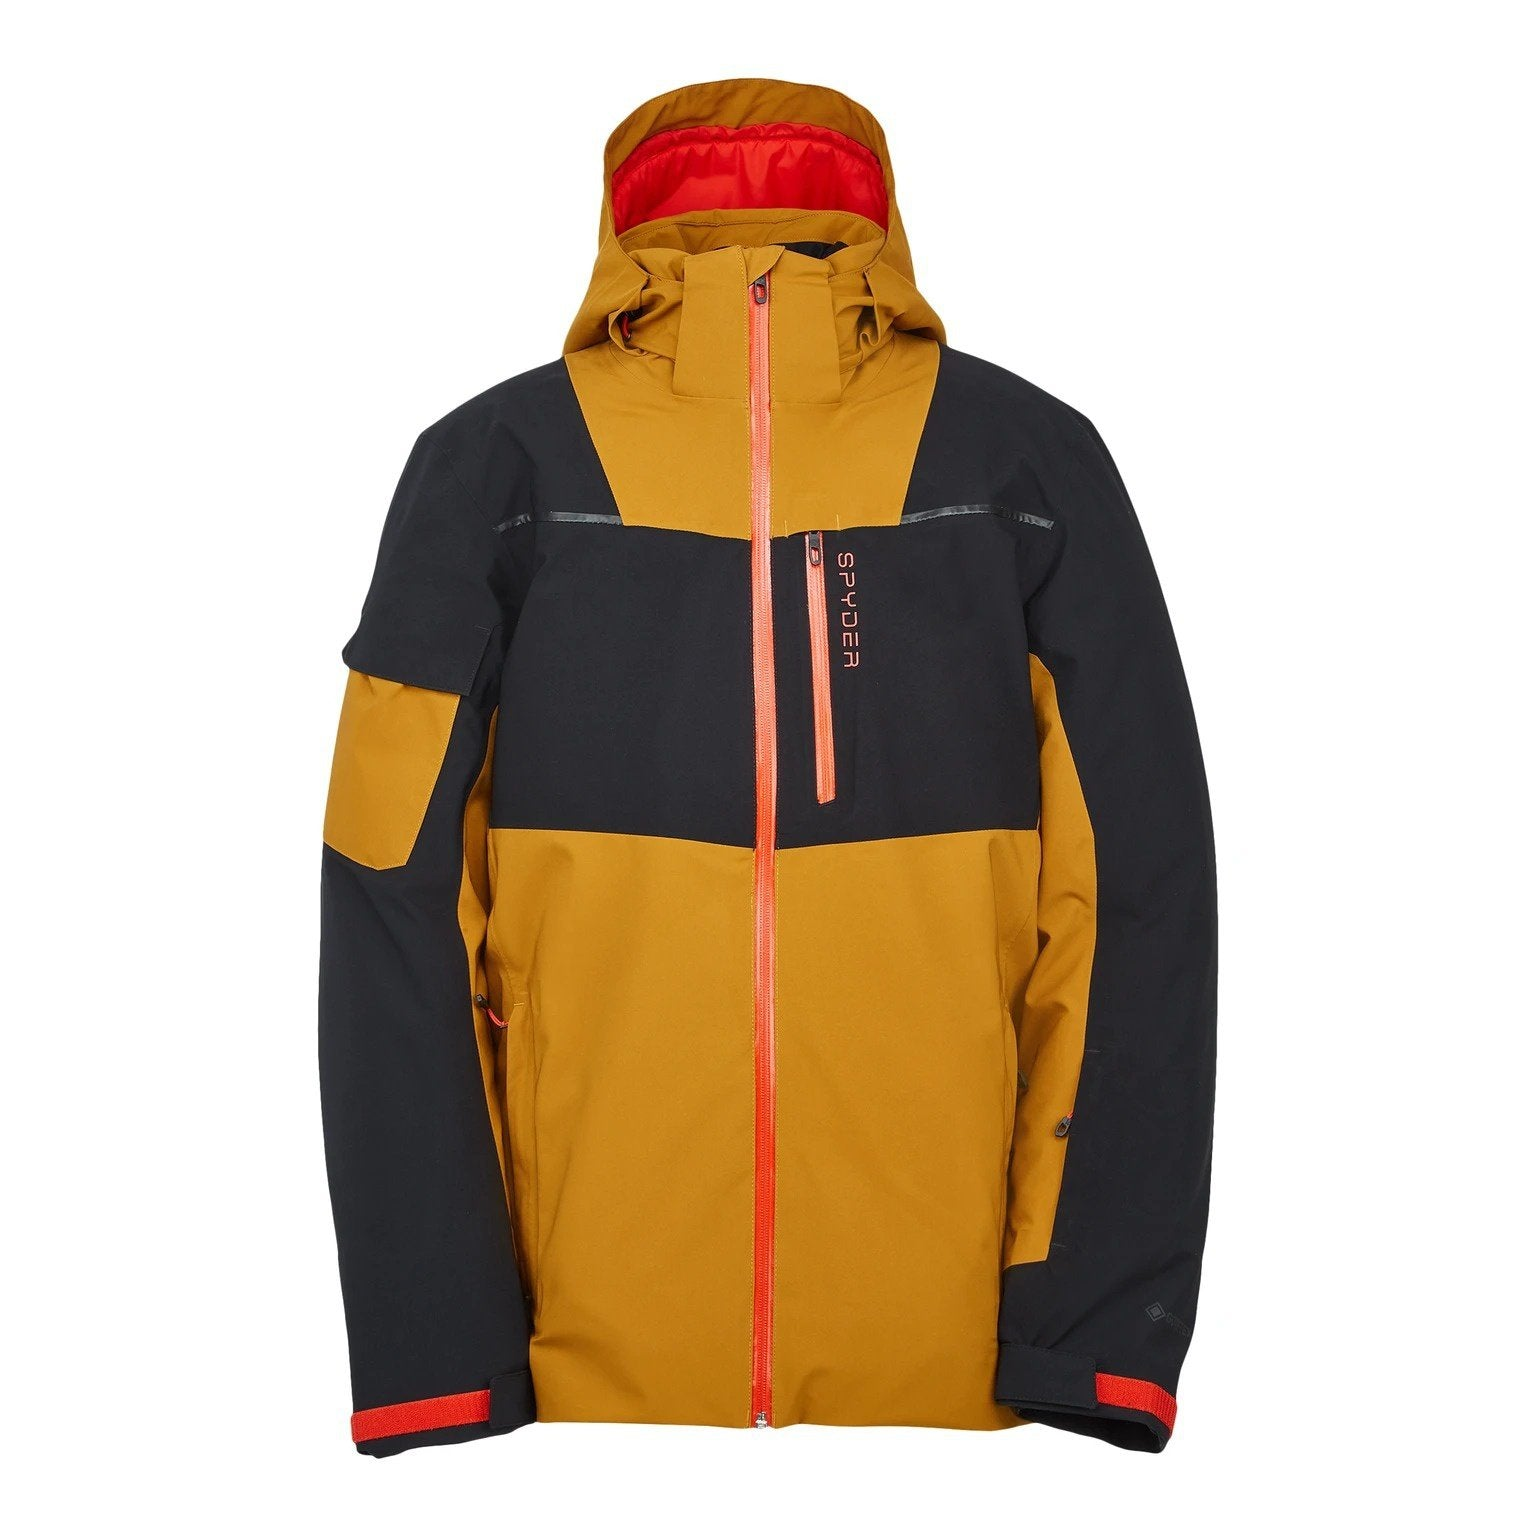 Spyder 2021 Men's CHAMBERS GTX Jacket